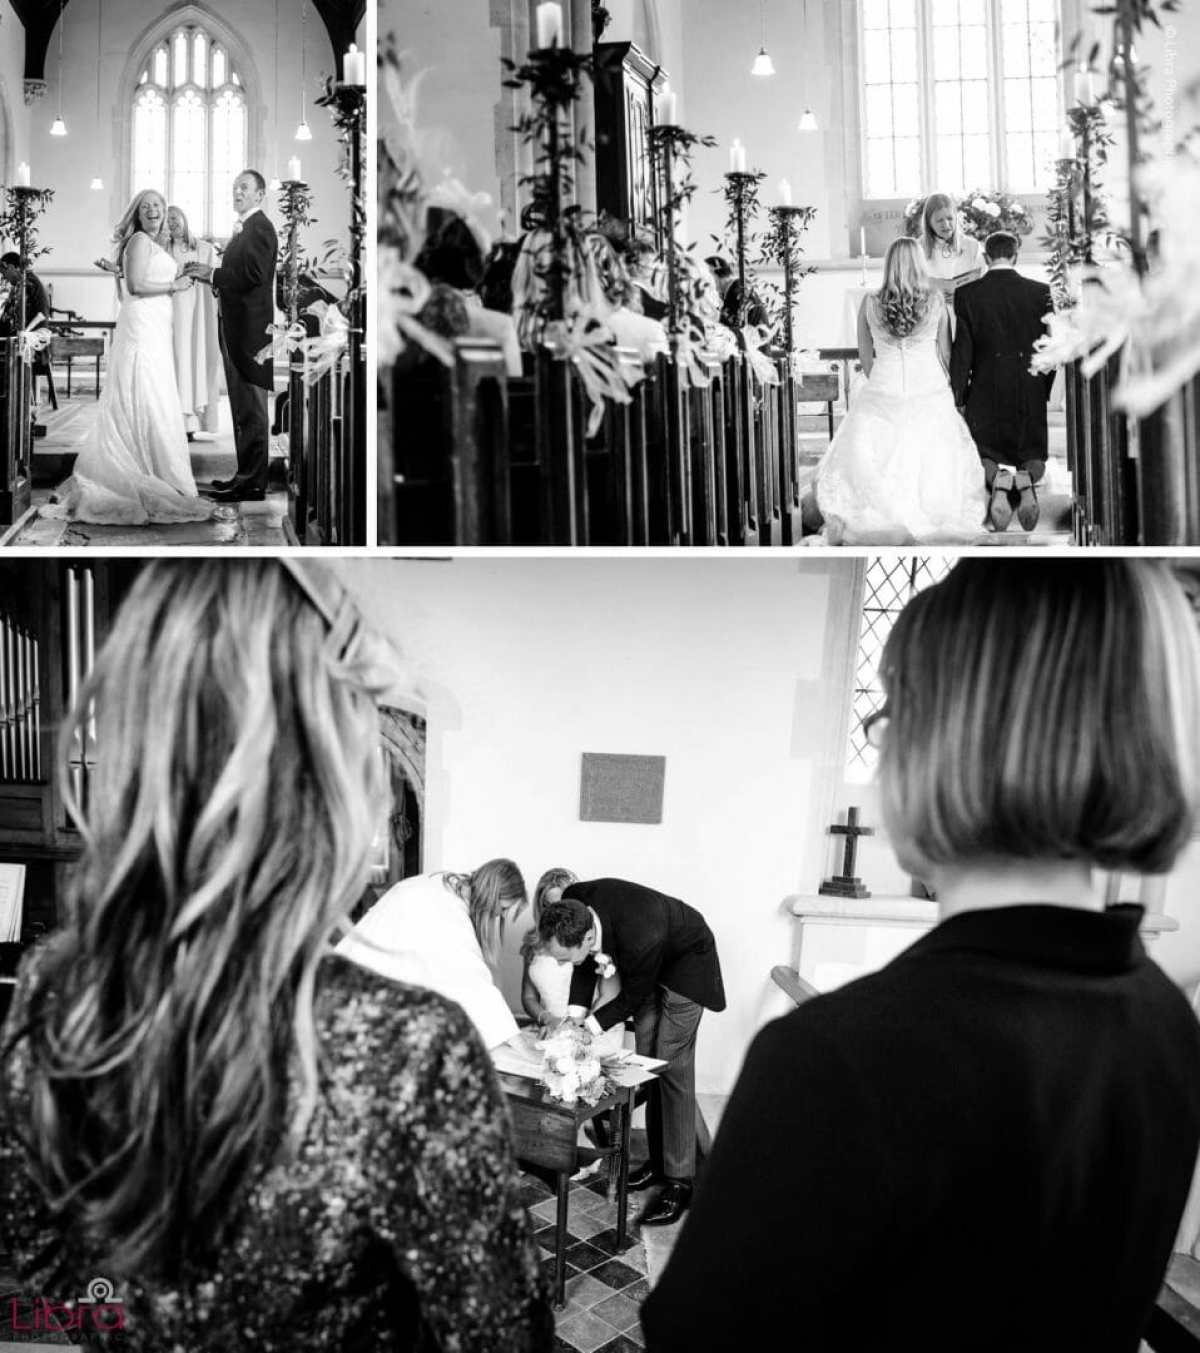 Wedding seremony in black and white